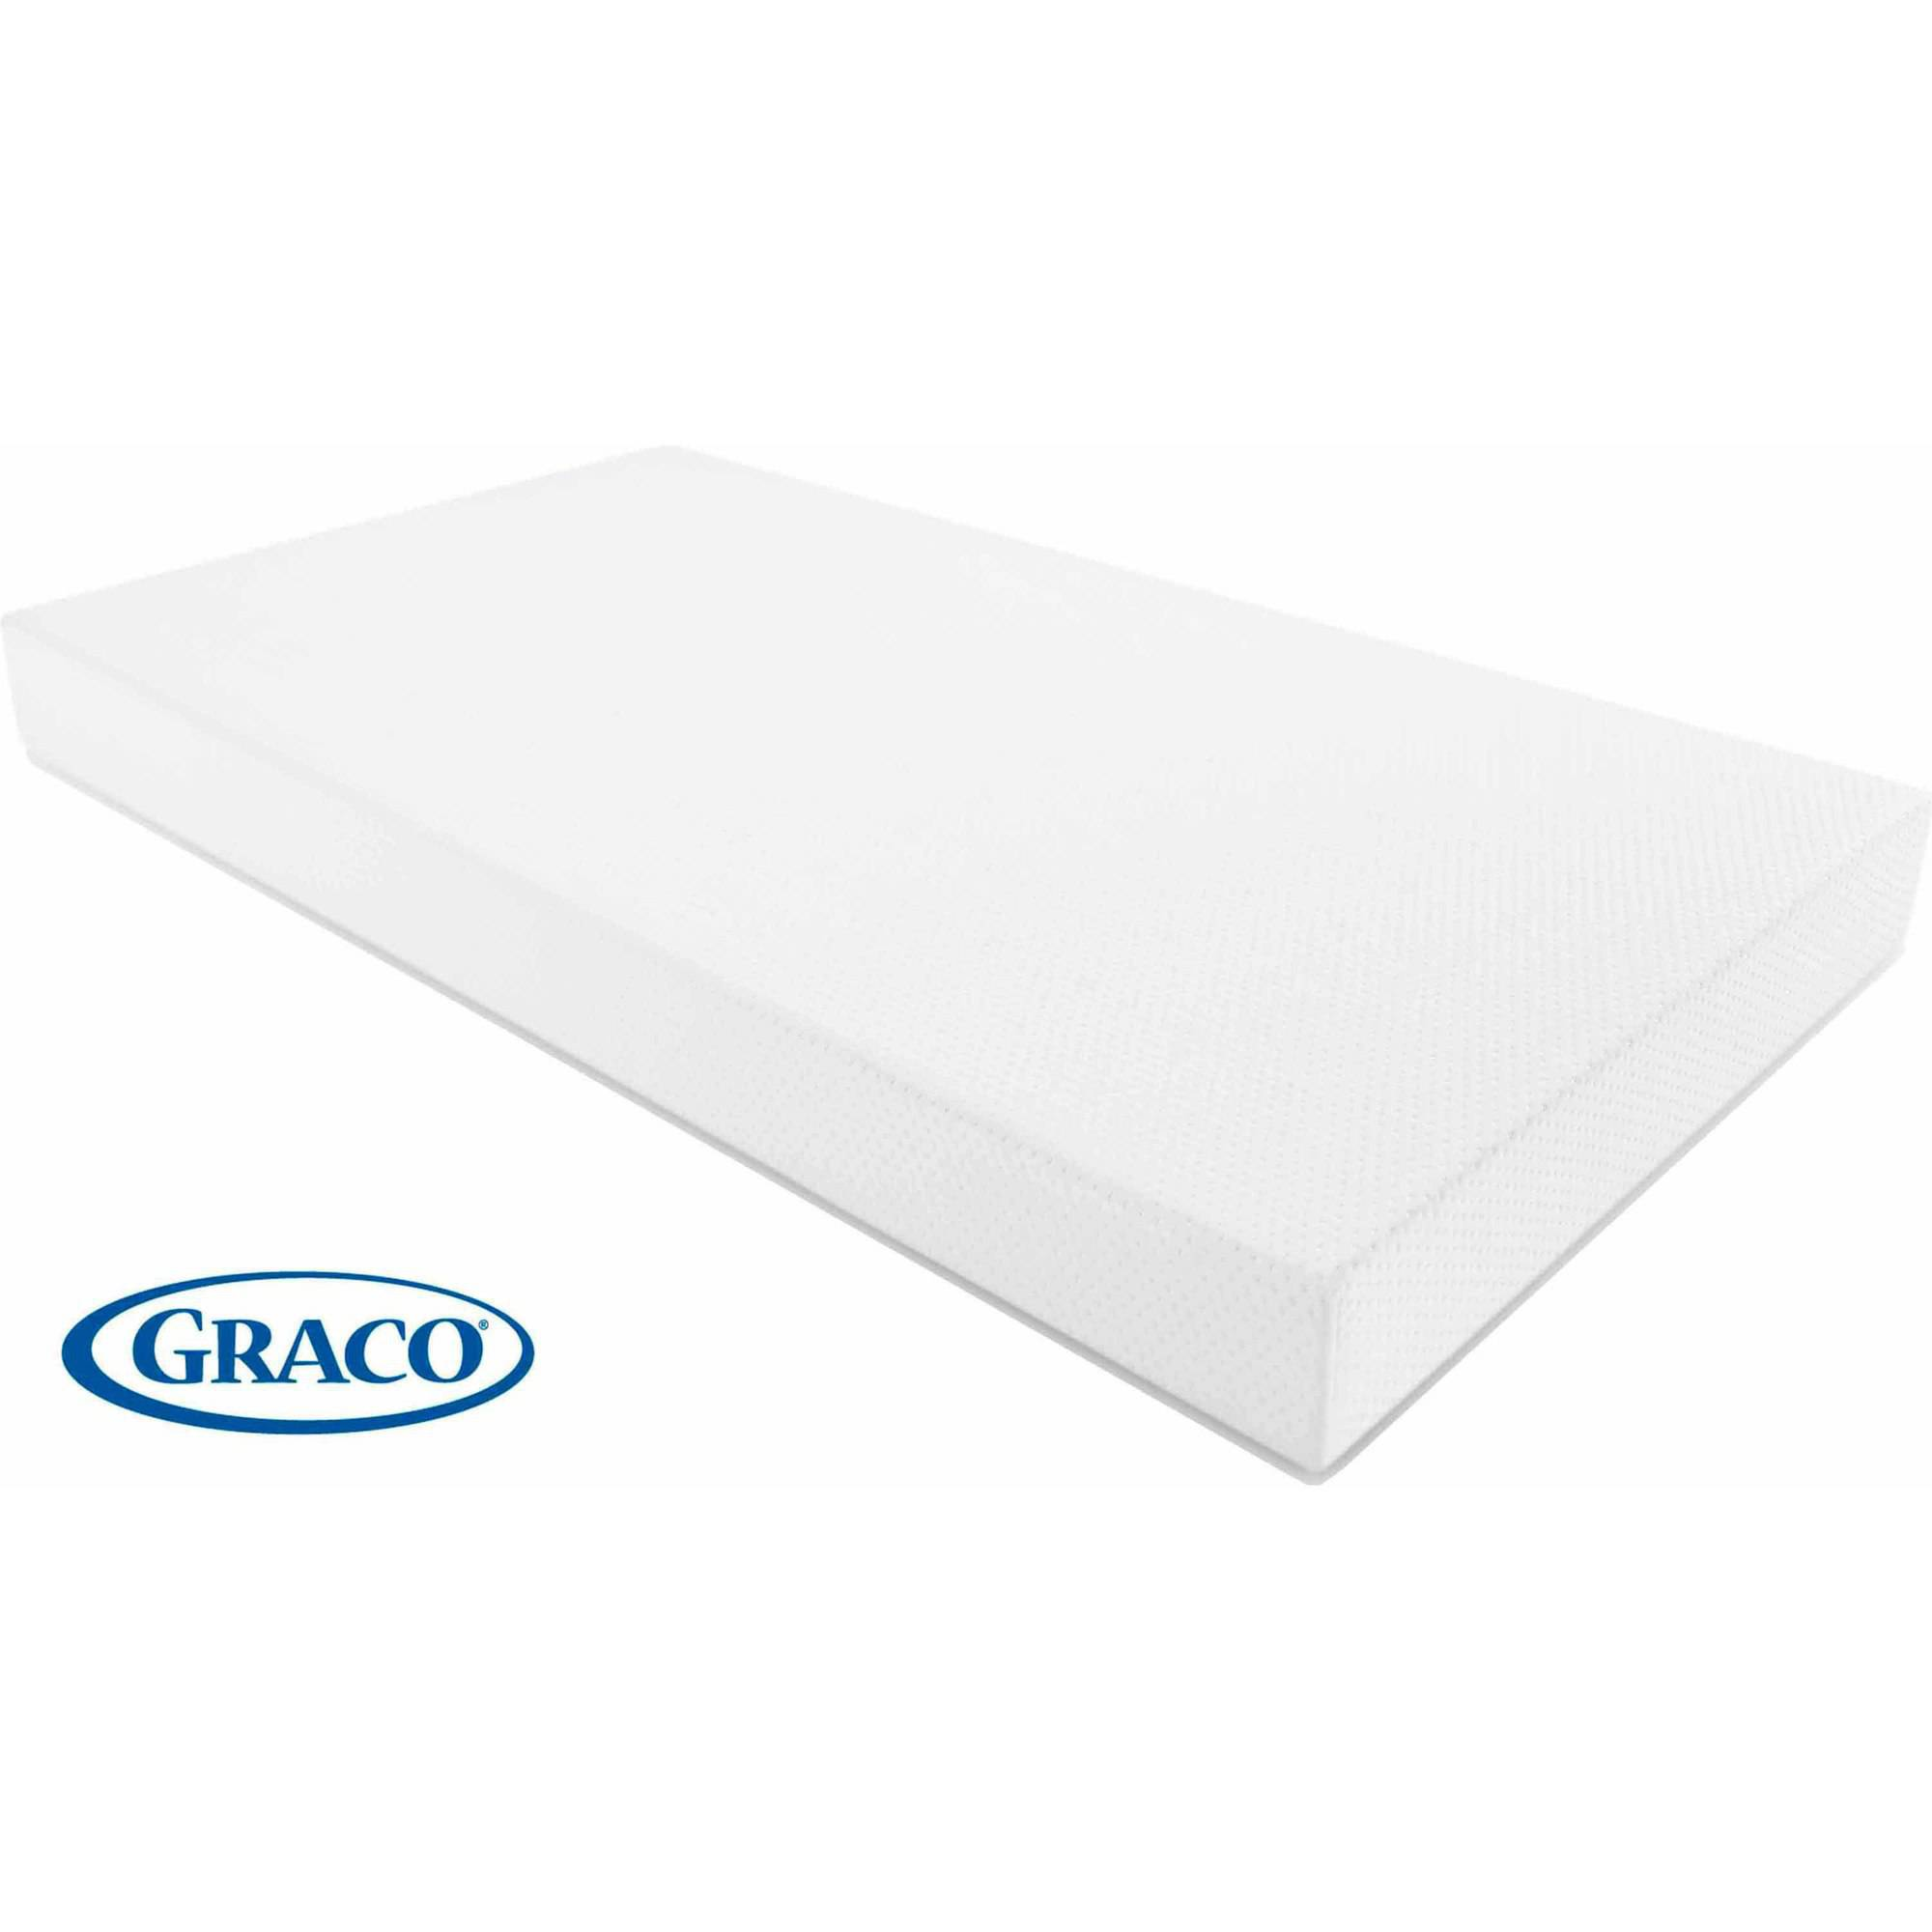 graco toddler bed instructions